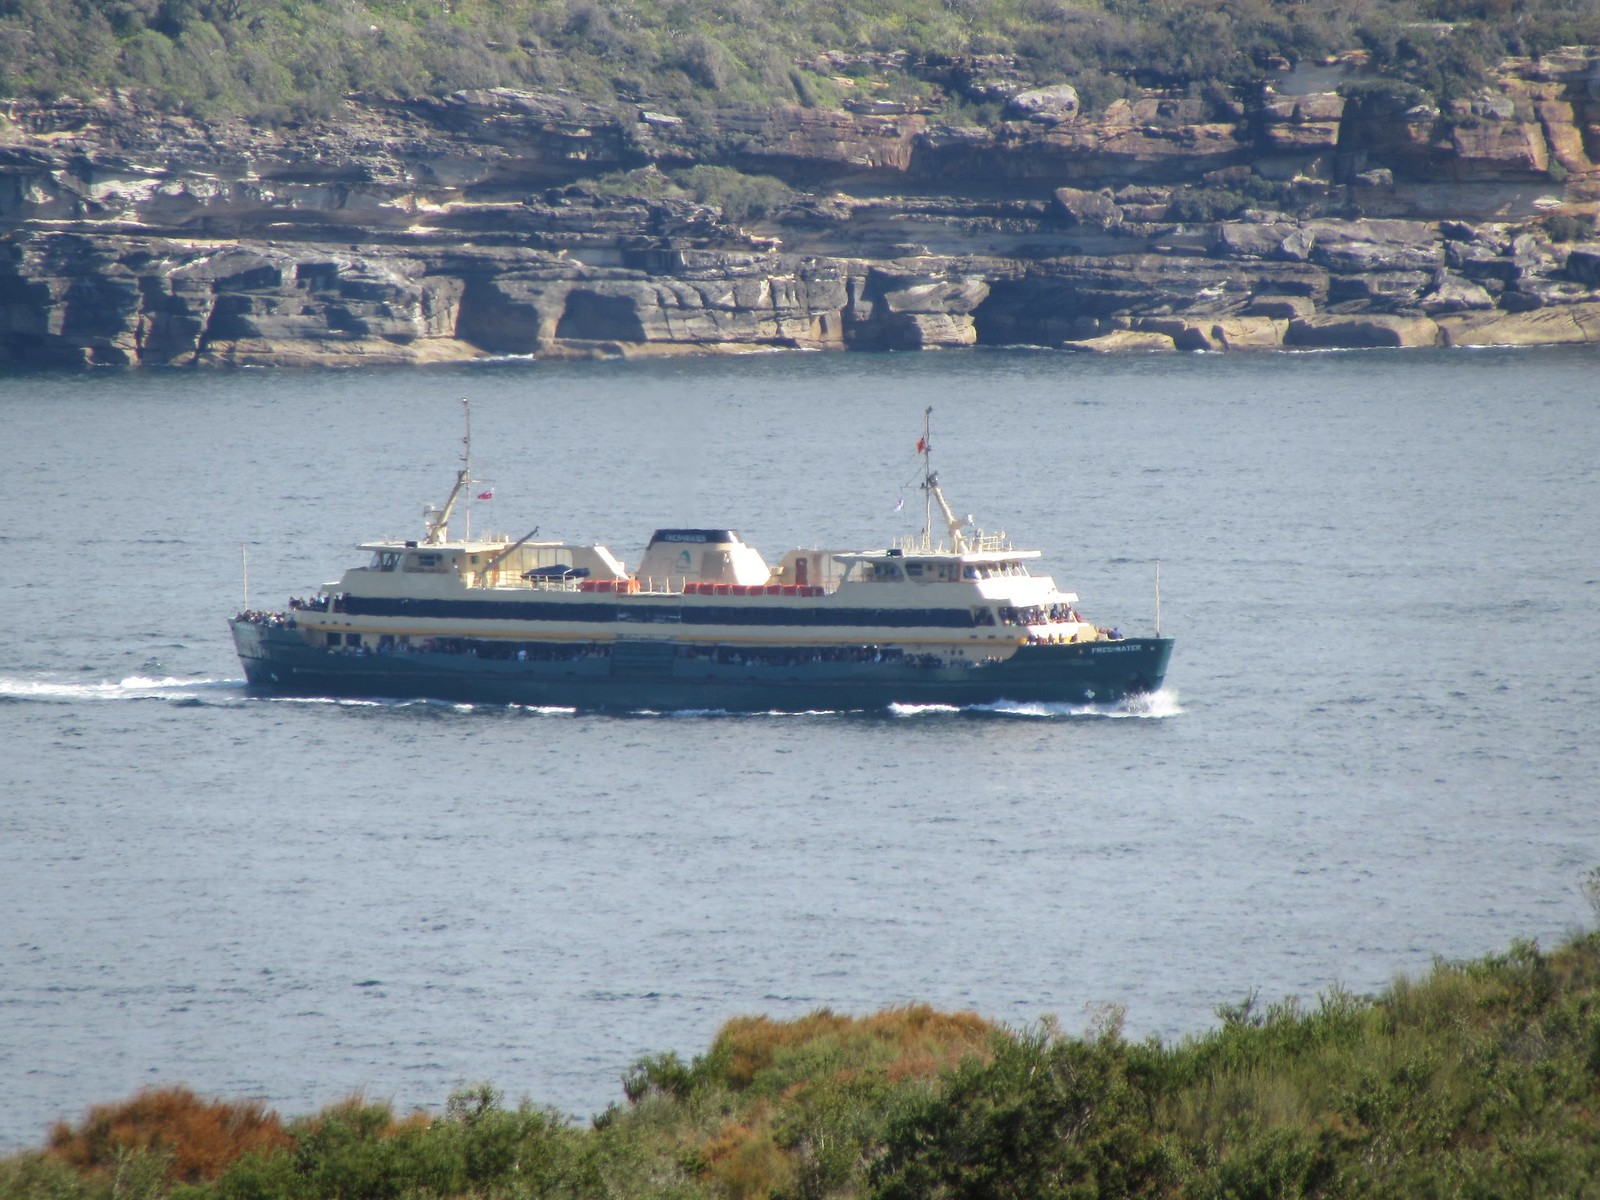 A Sydney Ferry Boat - as seen from North Head, Sydney (Manly area)